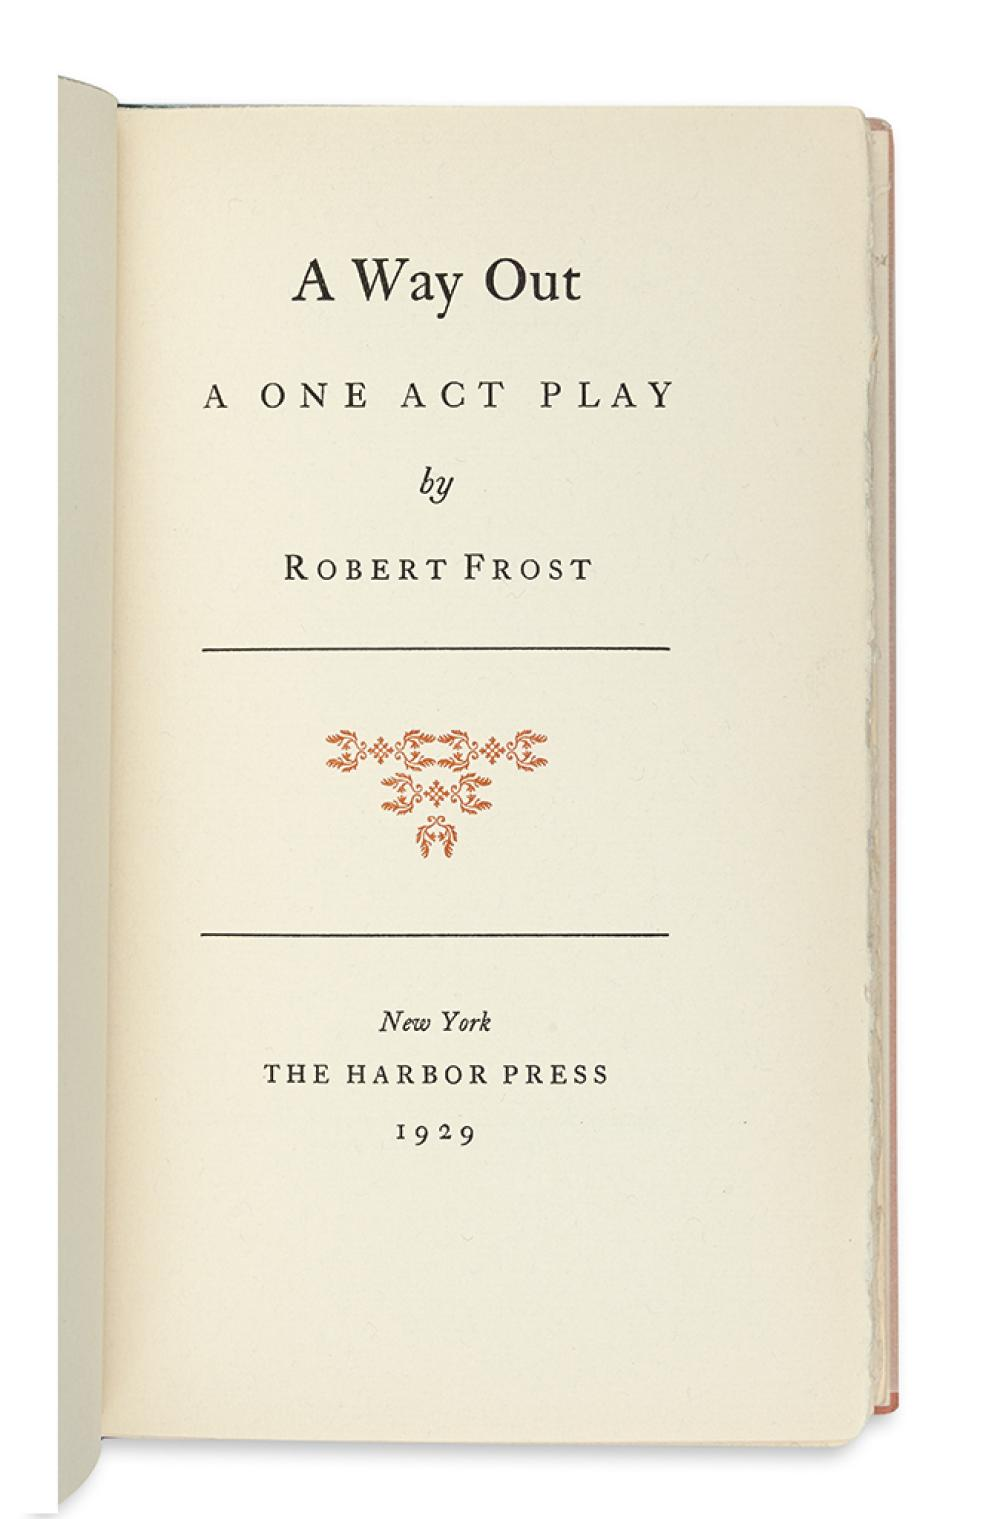 FROST, ROBERT. A Way Out: A One Act Play.